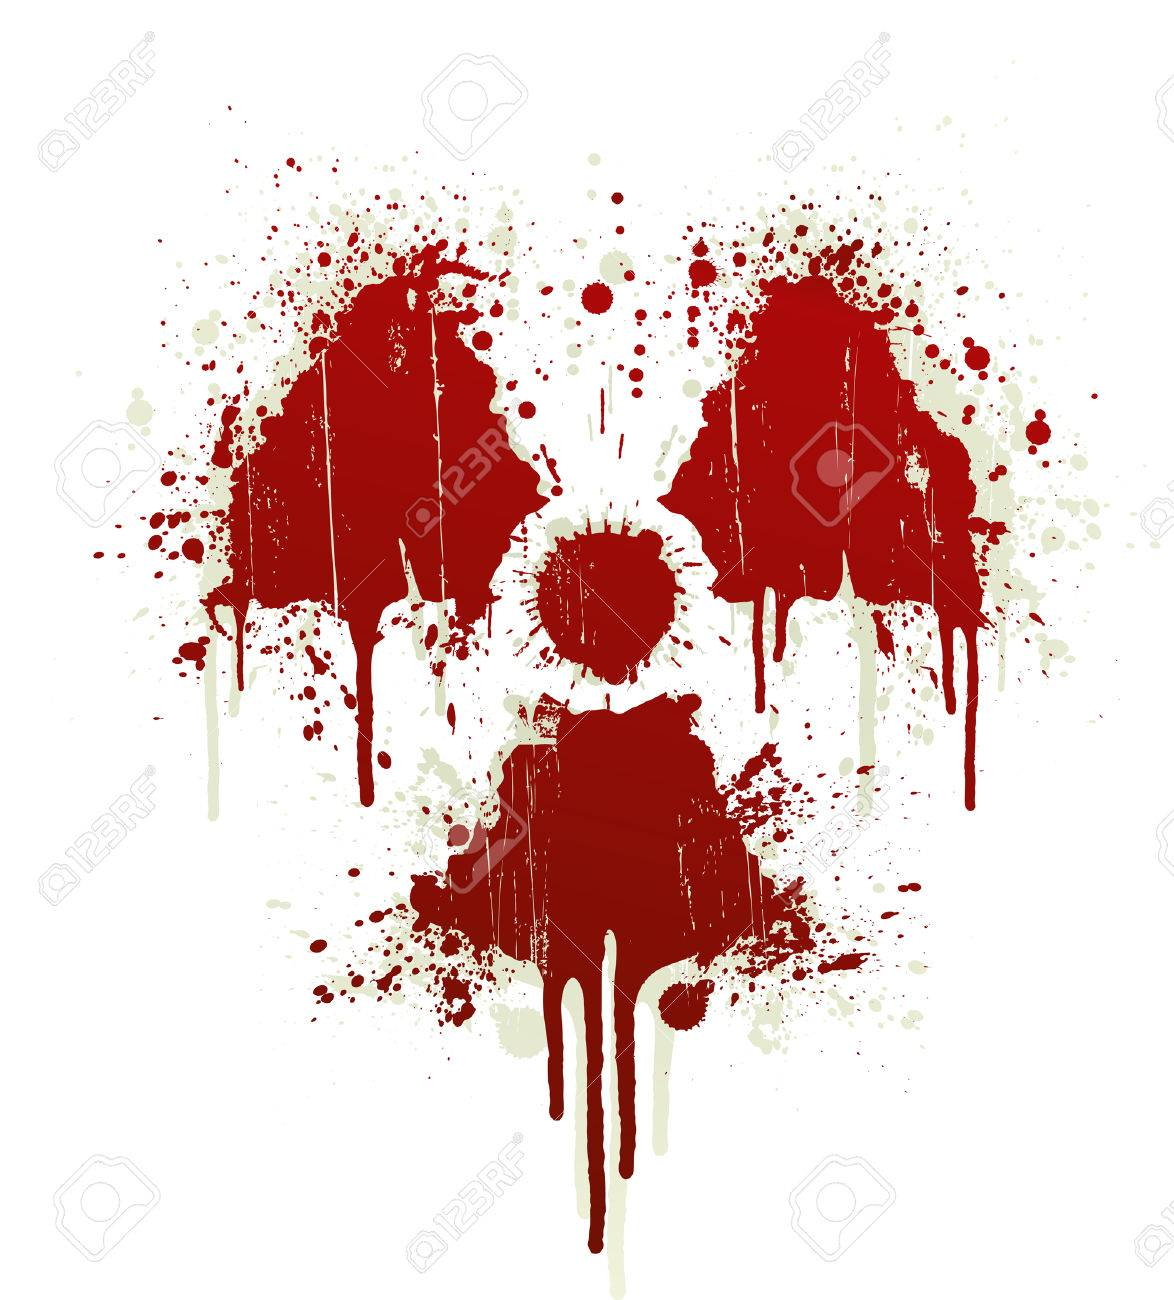 Vector illustration of a blood splatter design element in the shape of the radioactive symbol. Shadow on separate layer. - 3373295